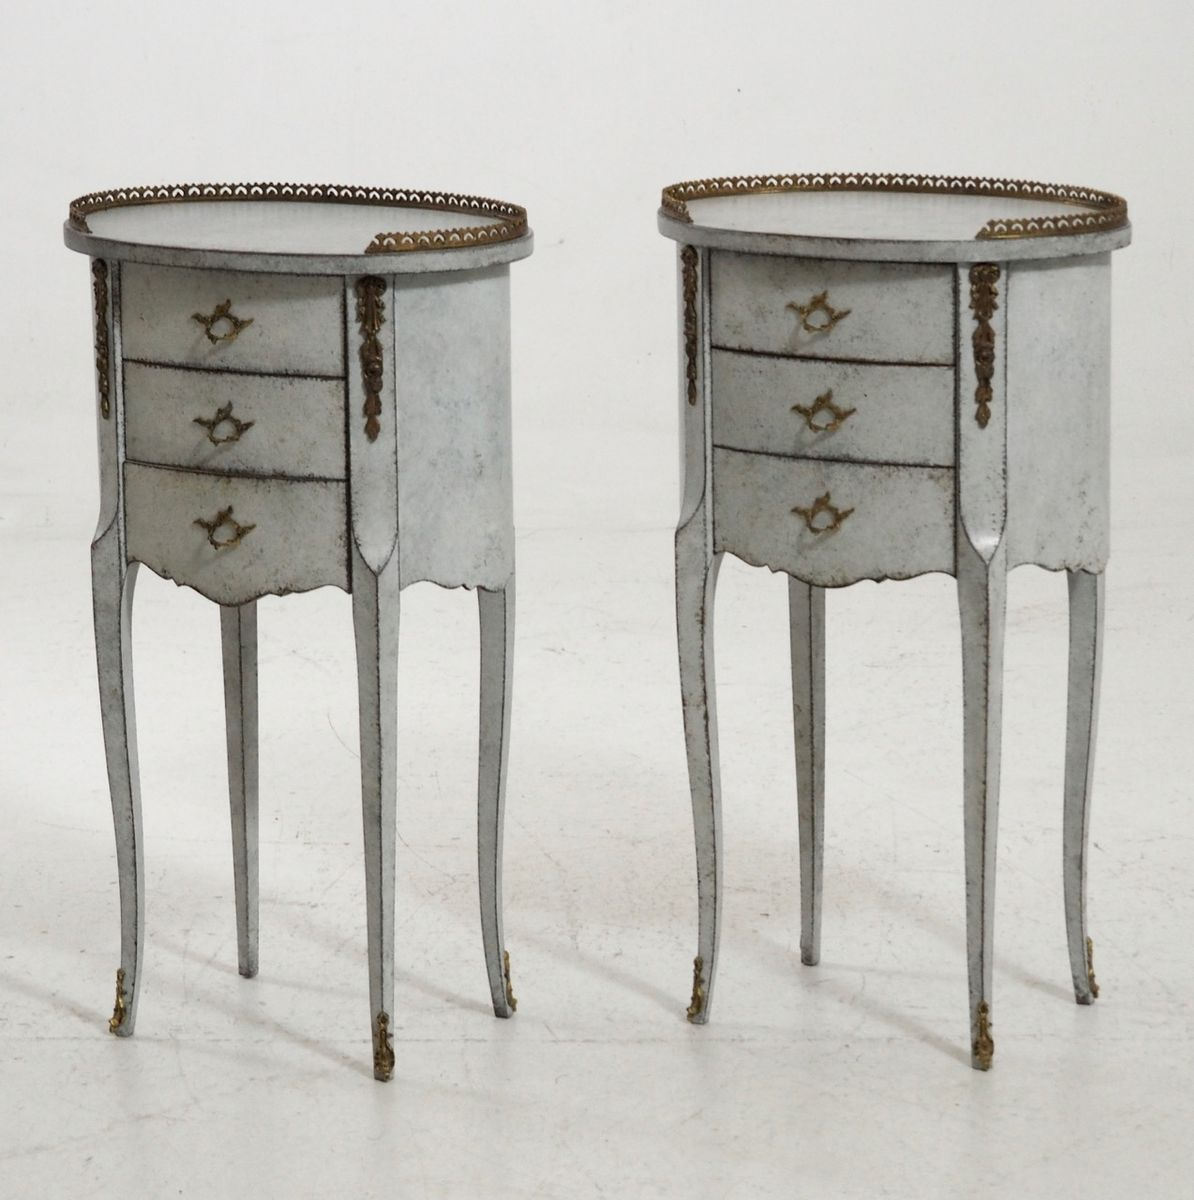 Antique French Side Tables with Bronze Details, Set of 2 - Antique French Side Tables With Bronze Details, Set Of 2 For Sale